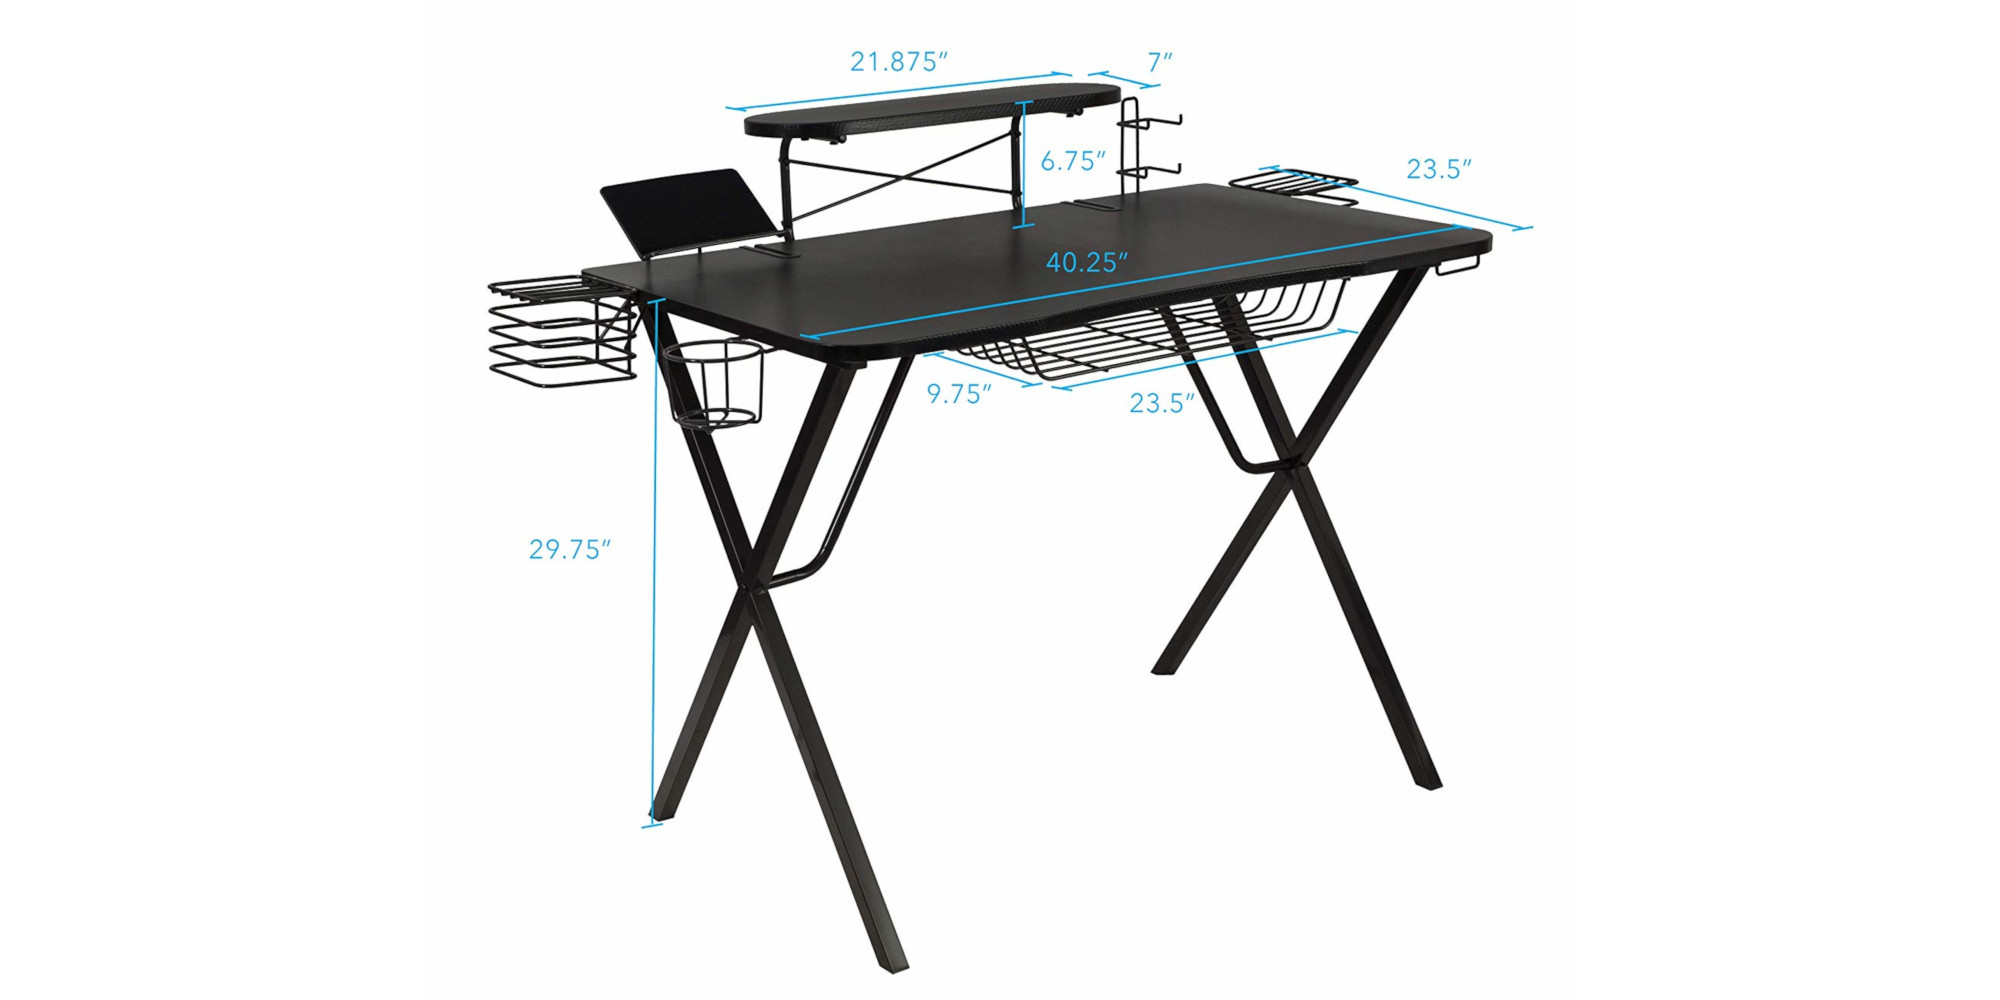 Pleasing The 5 Best Desks For Video Editing In 2019 Vfx Visuals Blog Download Free Architecture Designs Grimeyleaguecom